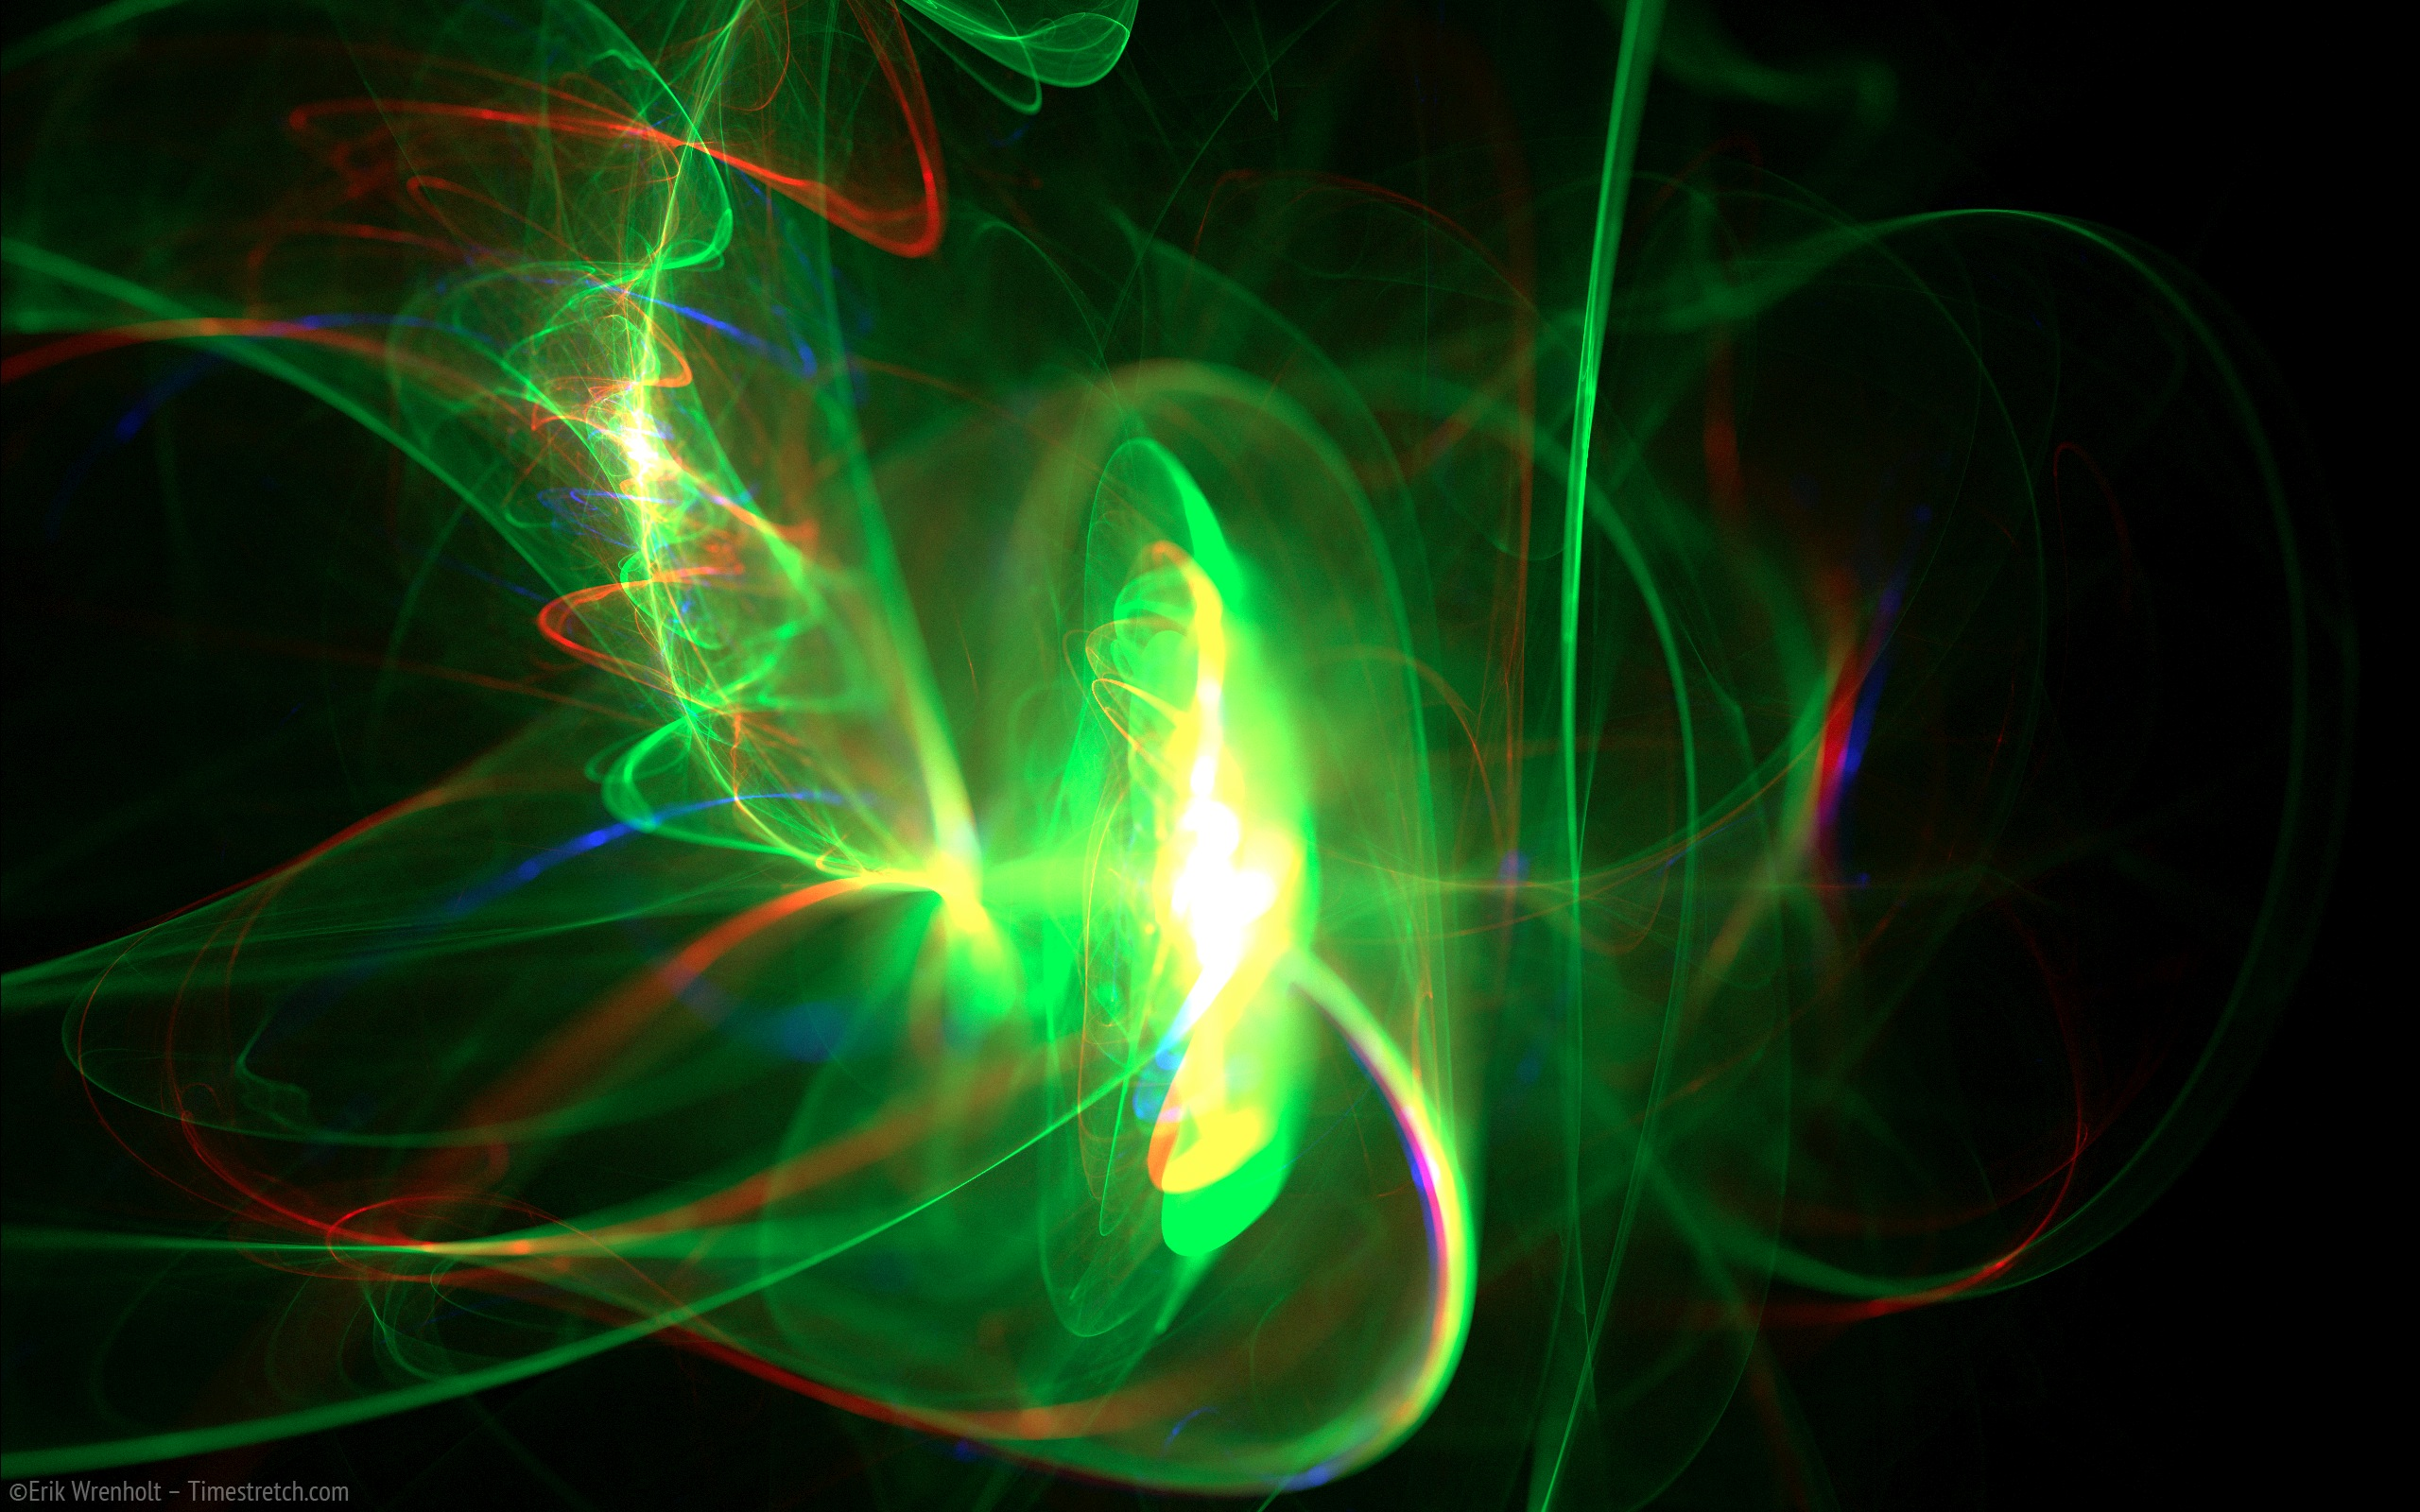 Green Flame Wallpaper Images Pictures   Becuo 2560x1600